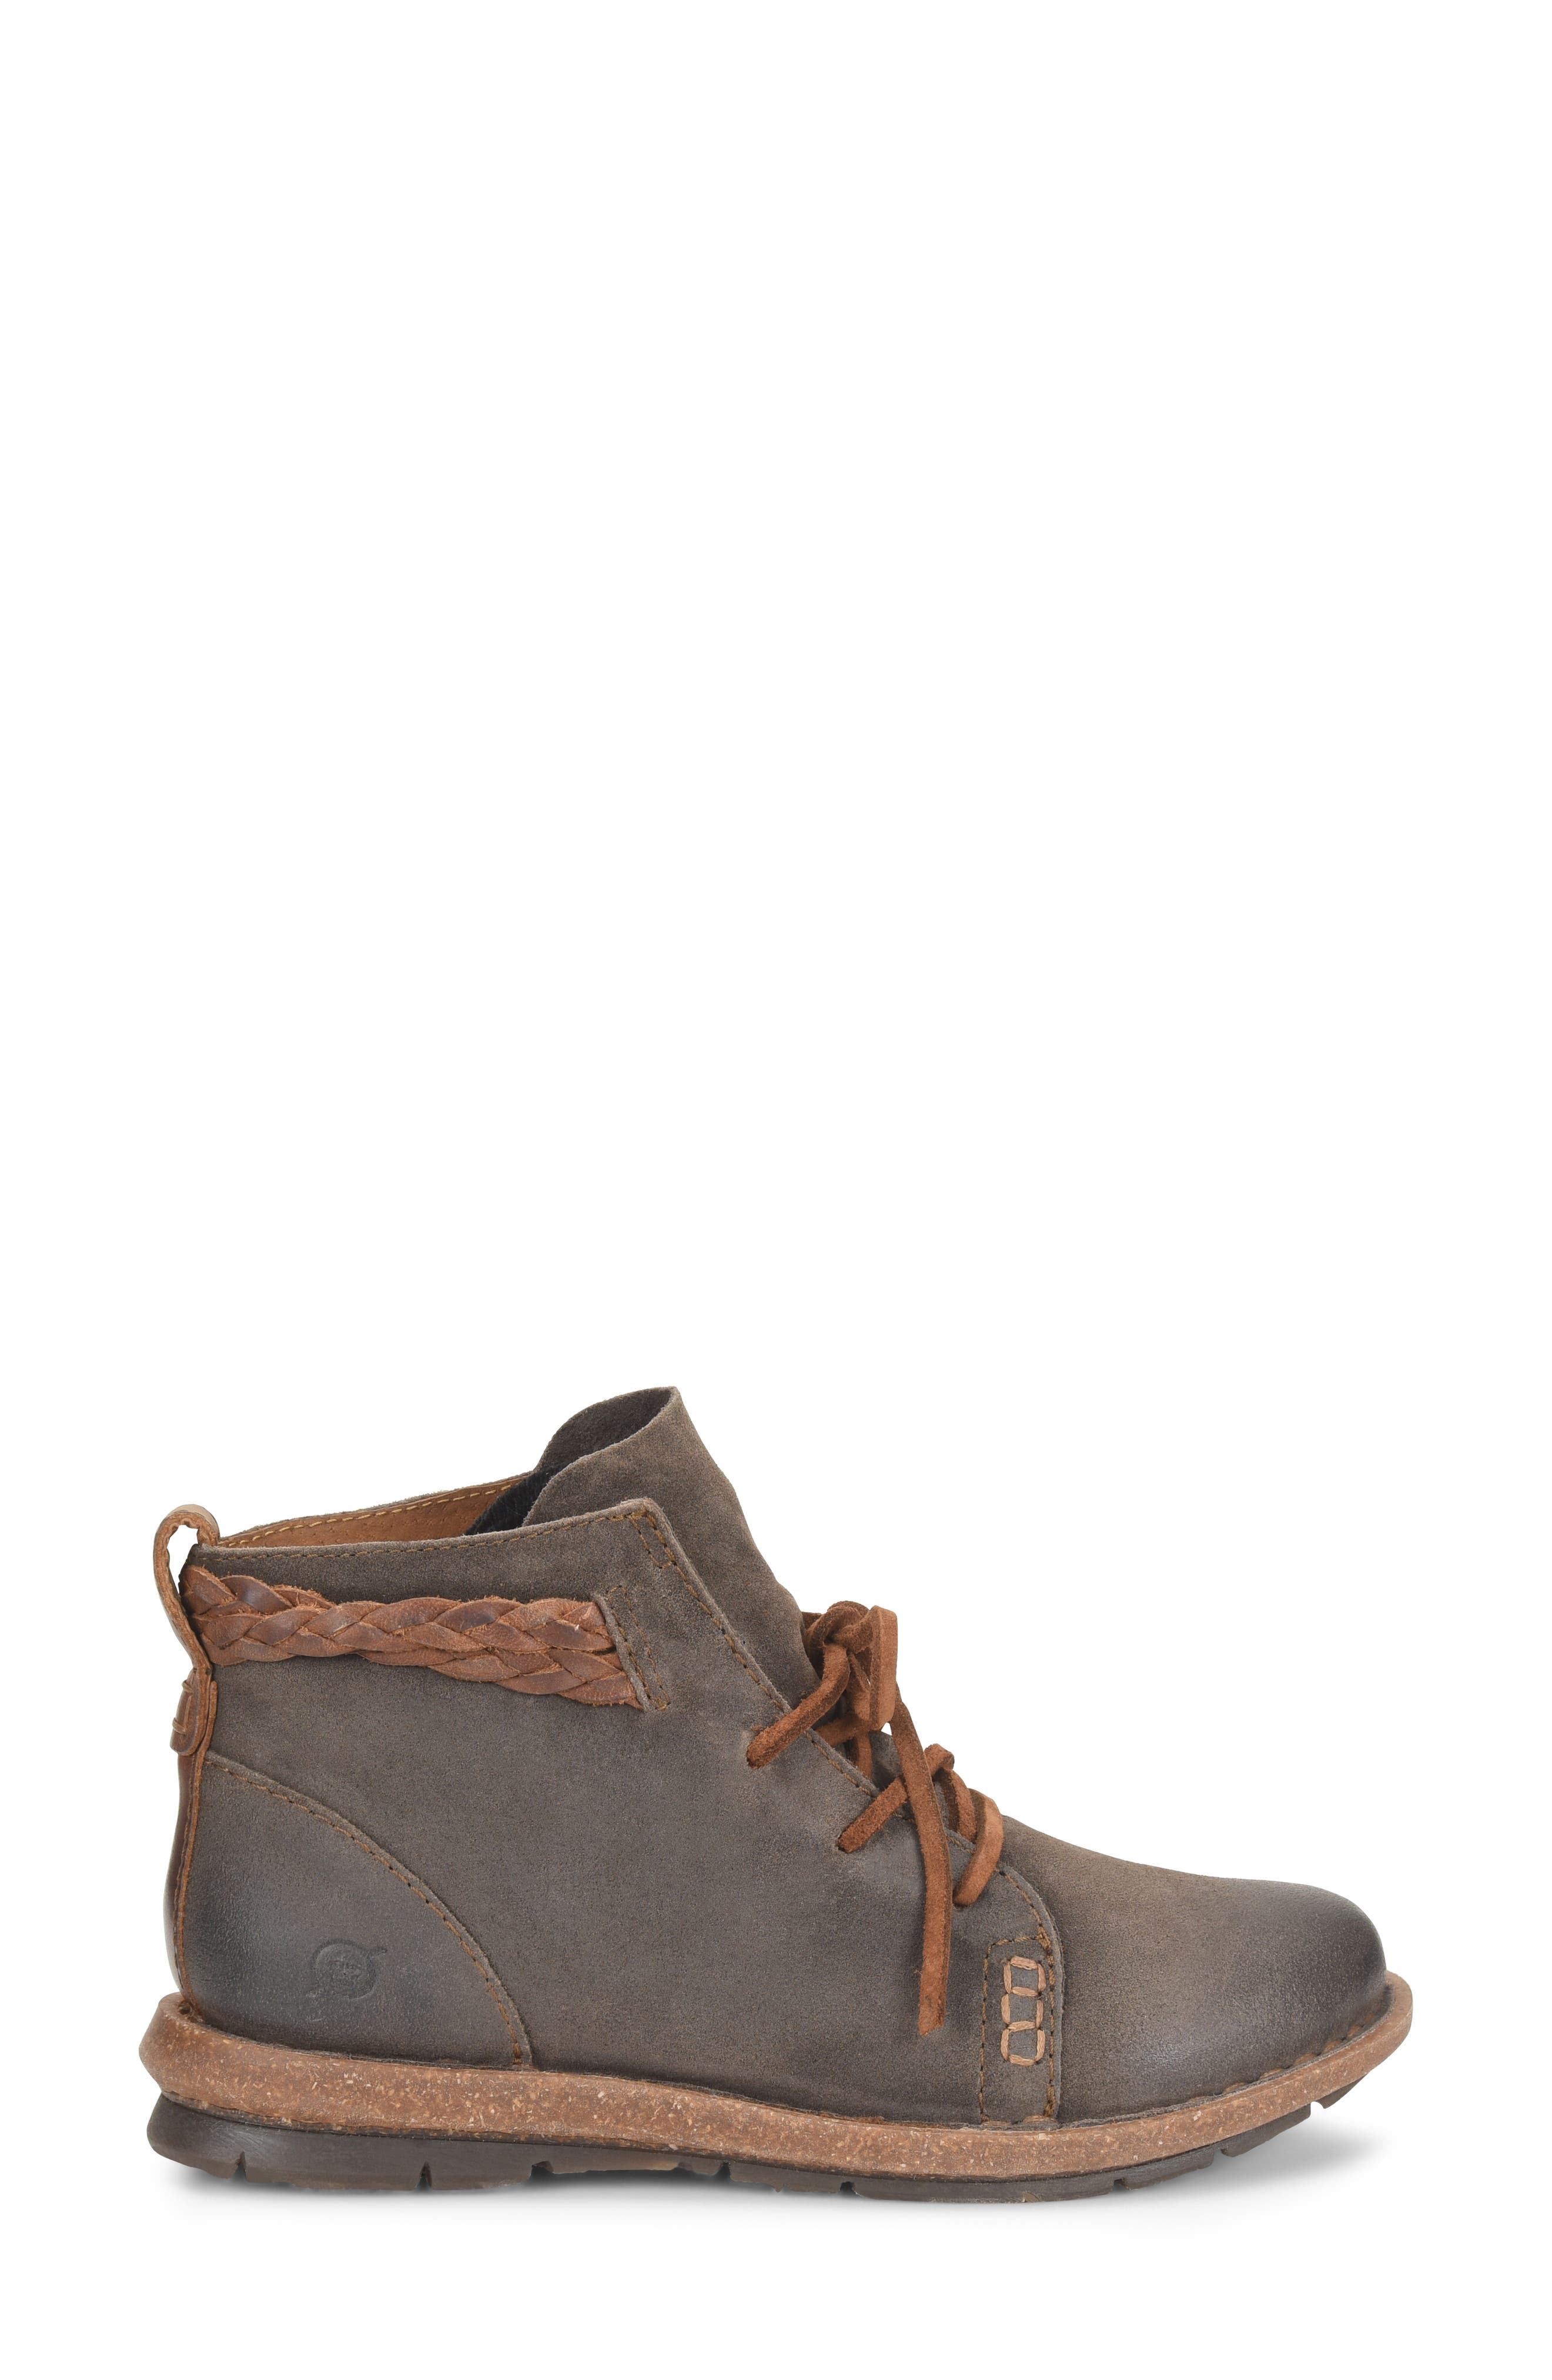 Temple Bootie,                             Alternate thumbnail 3, color,                             TAUPE DISTRESSED LEATHER